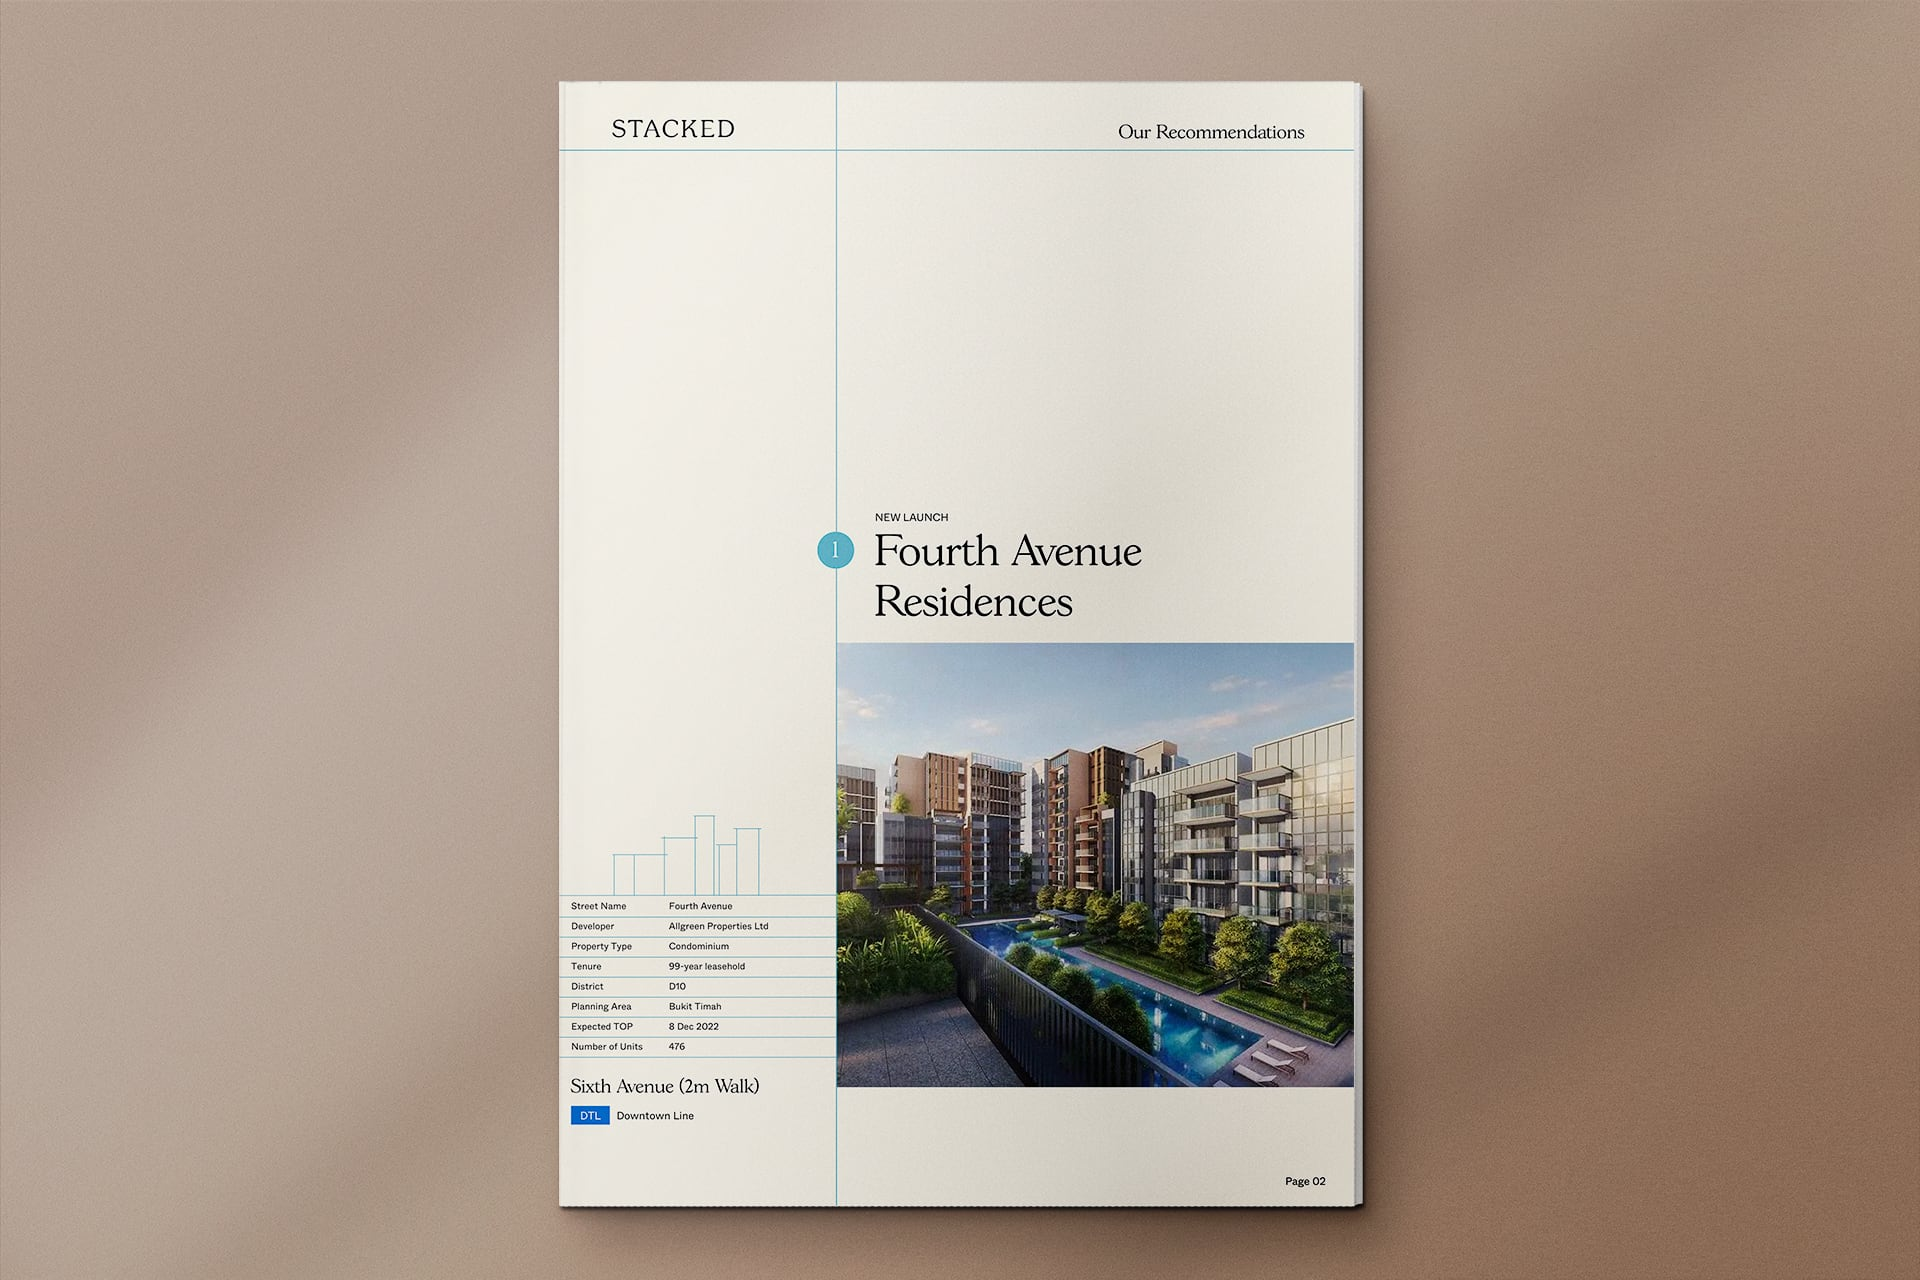 fourth avenue residences case study